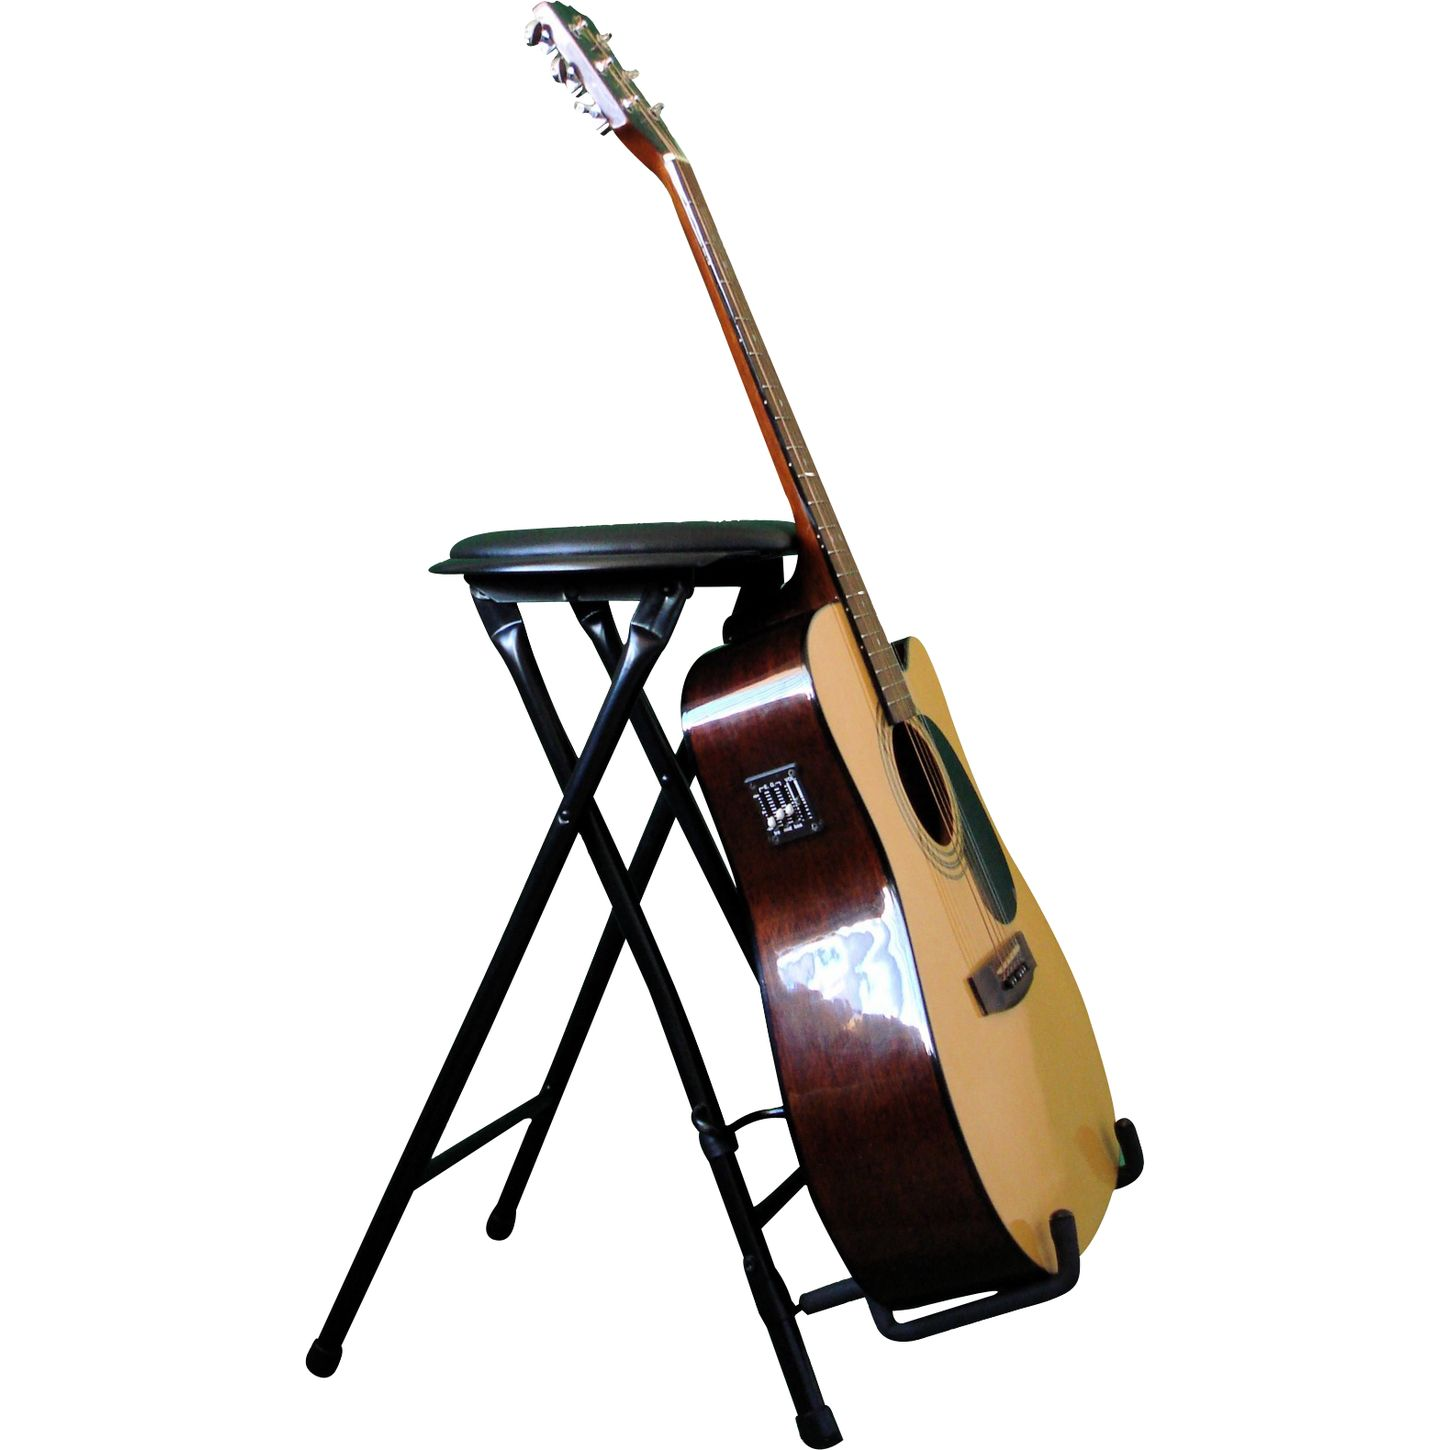 Guitar practice chair - Guitar Chairs Uk Best Guitar Qualily 2017